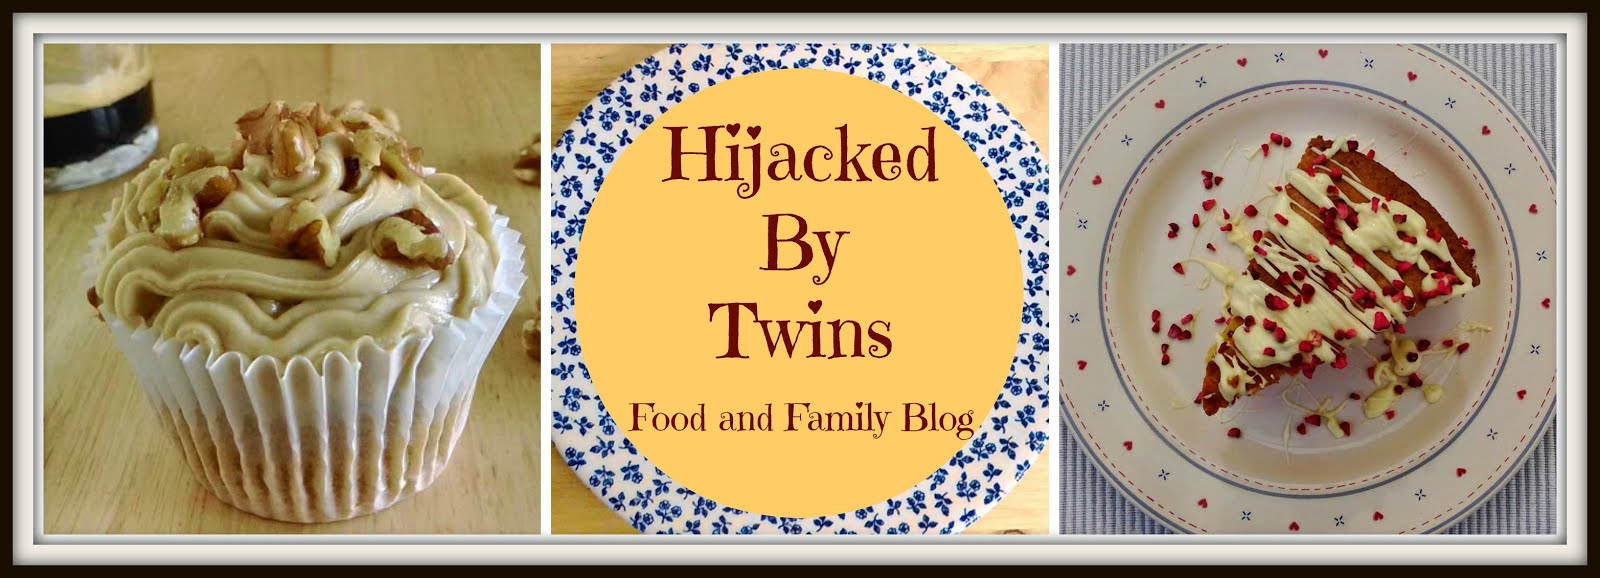 Hijacked By Twins